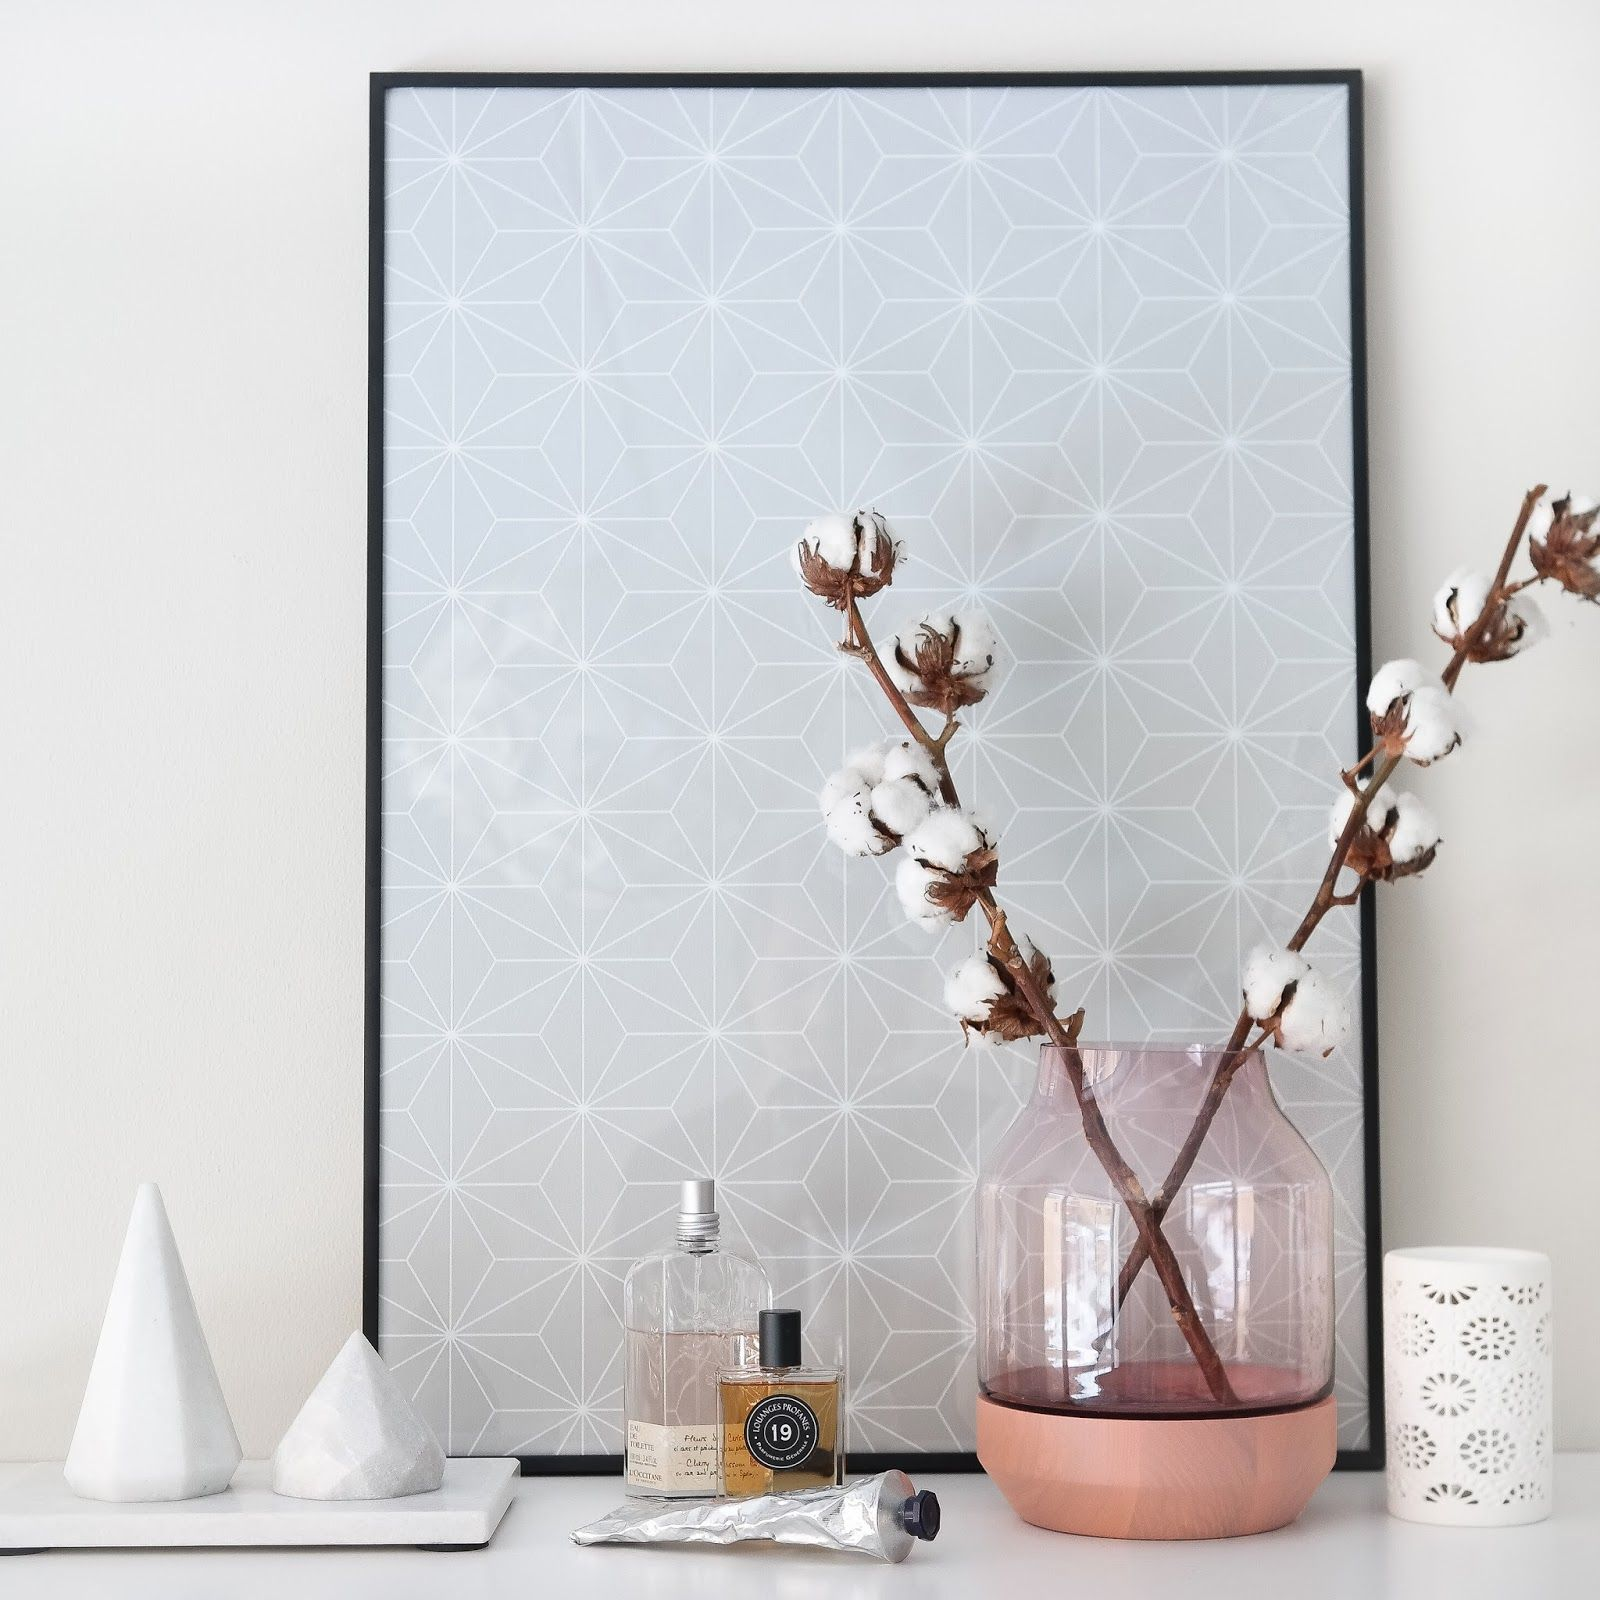 Contribution to the norwegian NIB-utfordring/NIB-challenge. Framed wallpaper from Ikea Bråkig, Vase from Muuto, marble diamonds and feminine details. Photo and styling: Wenche With